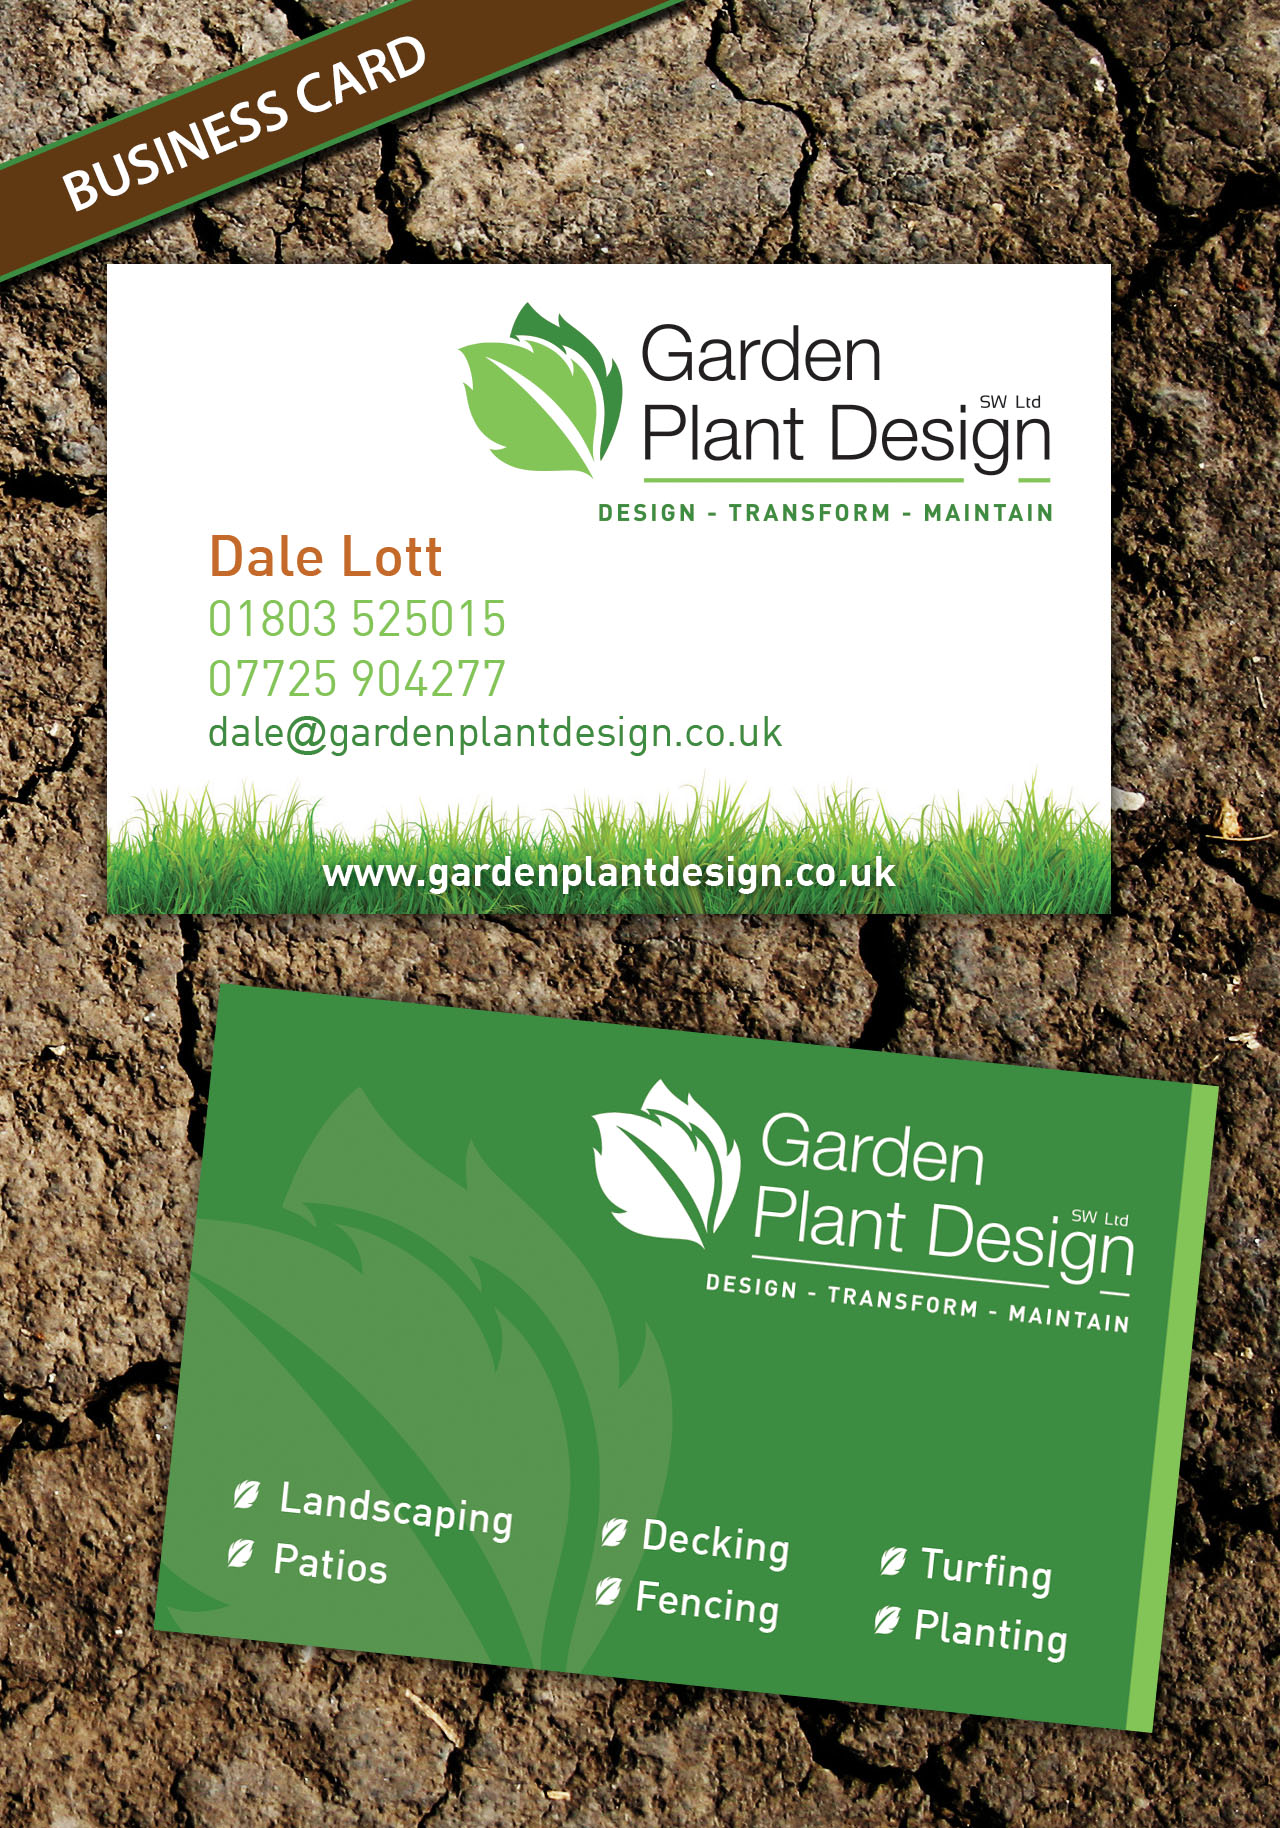 Garden Plant Design - Business Cards Design